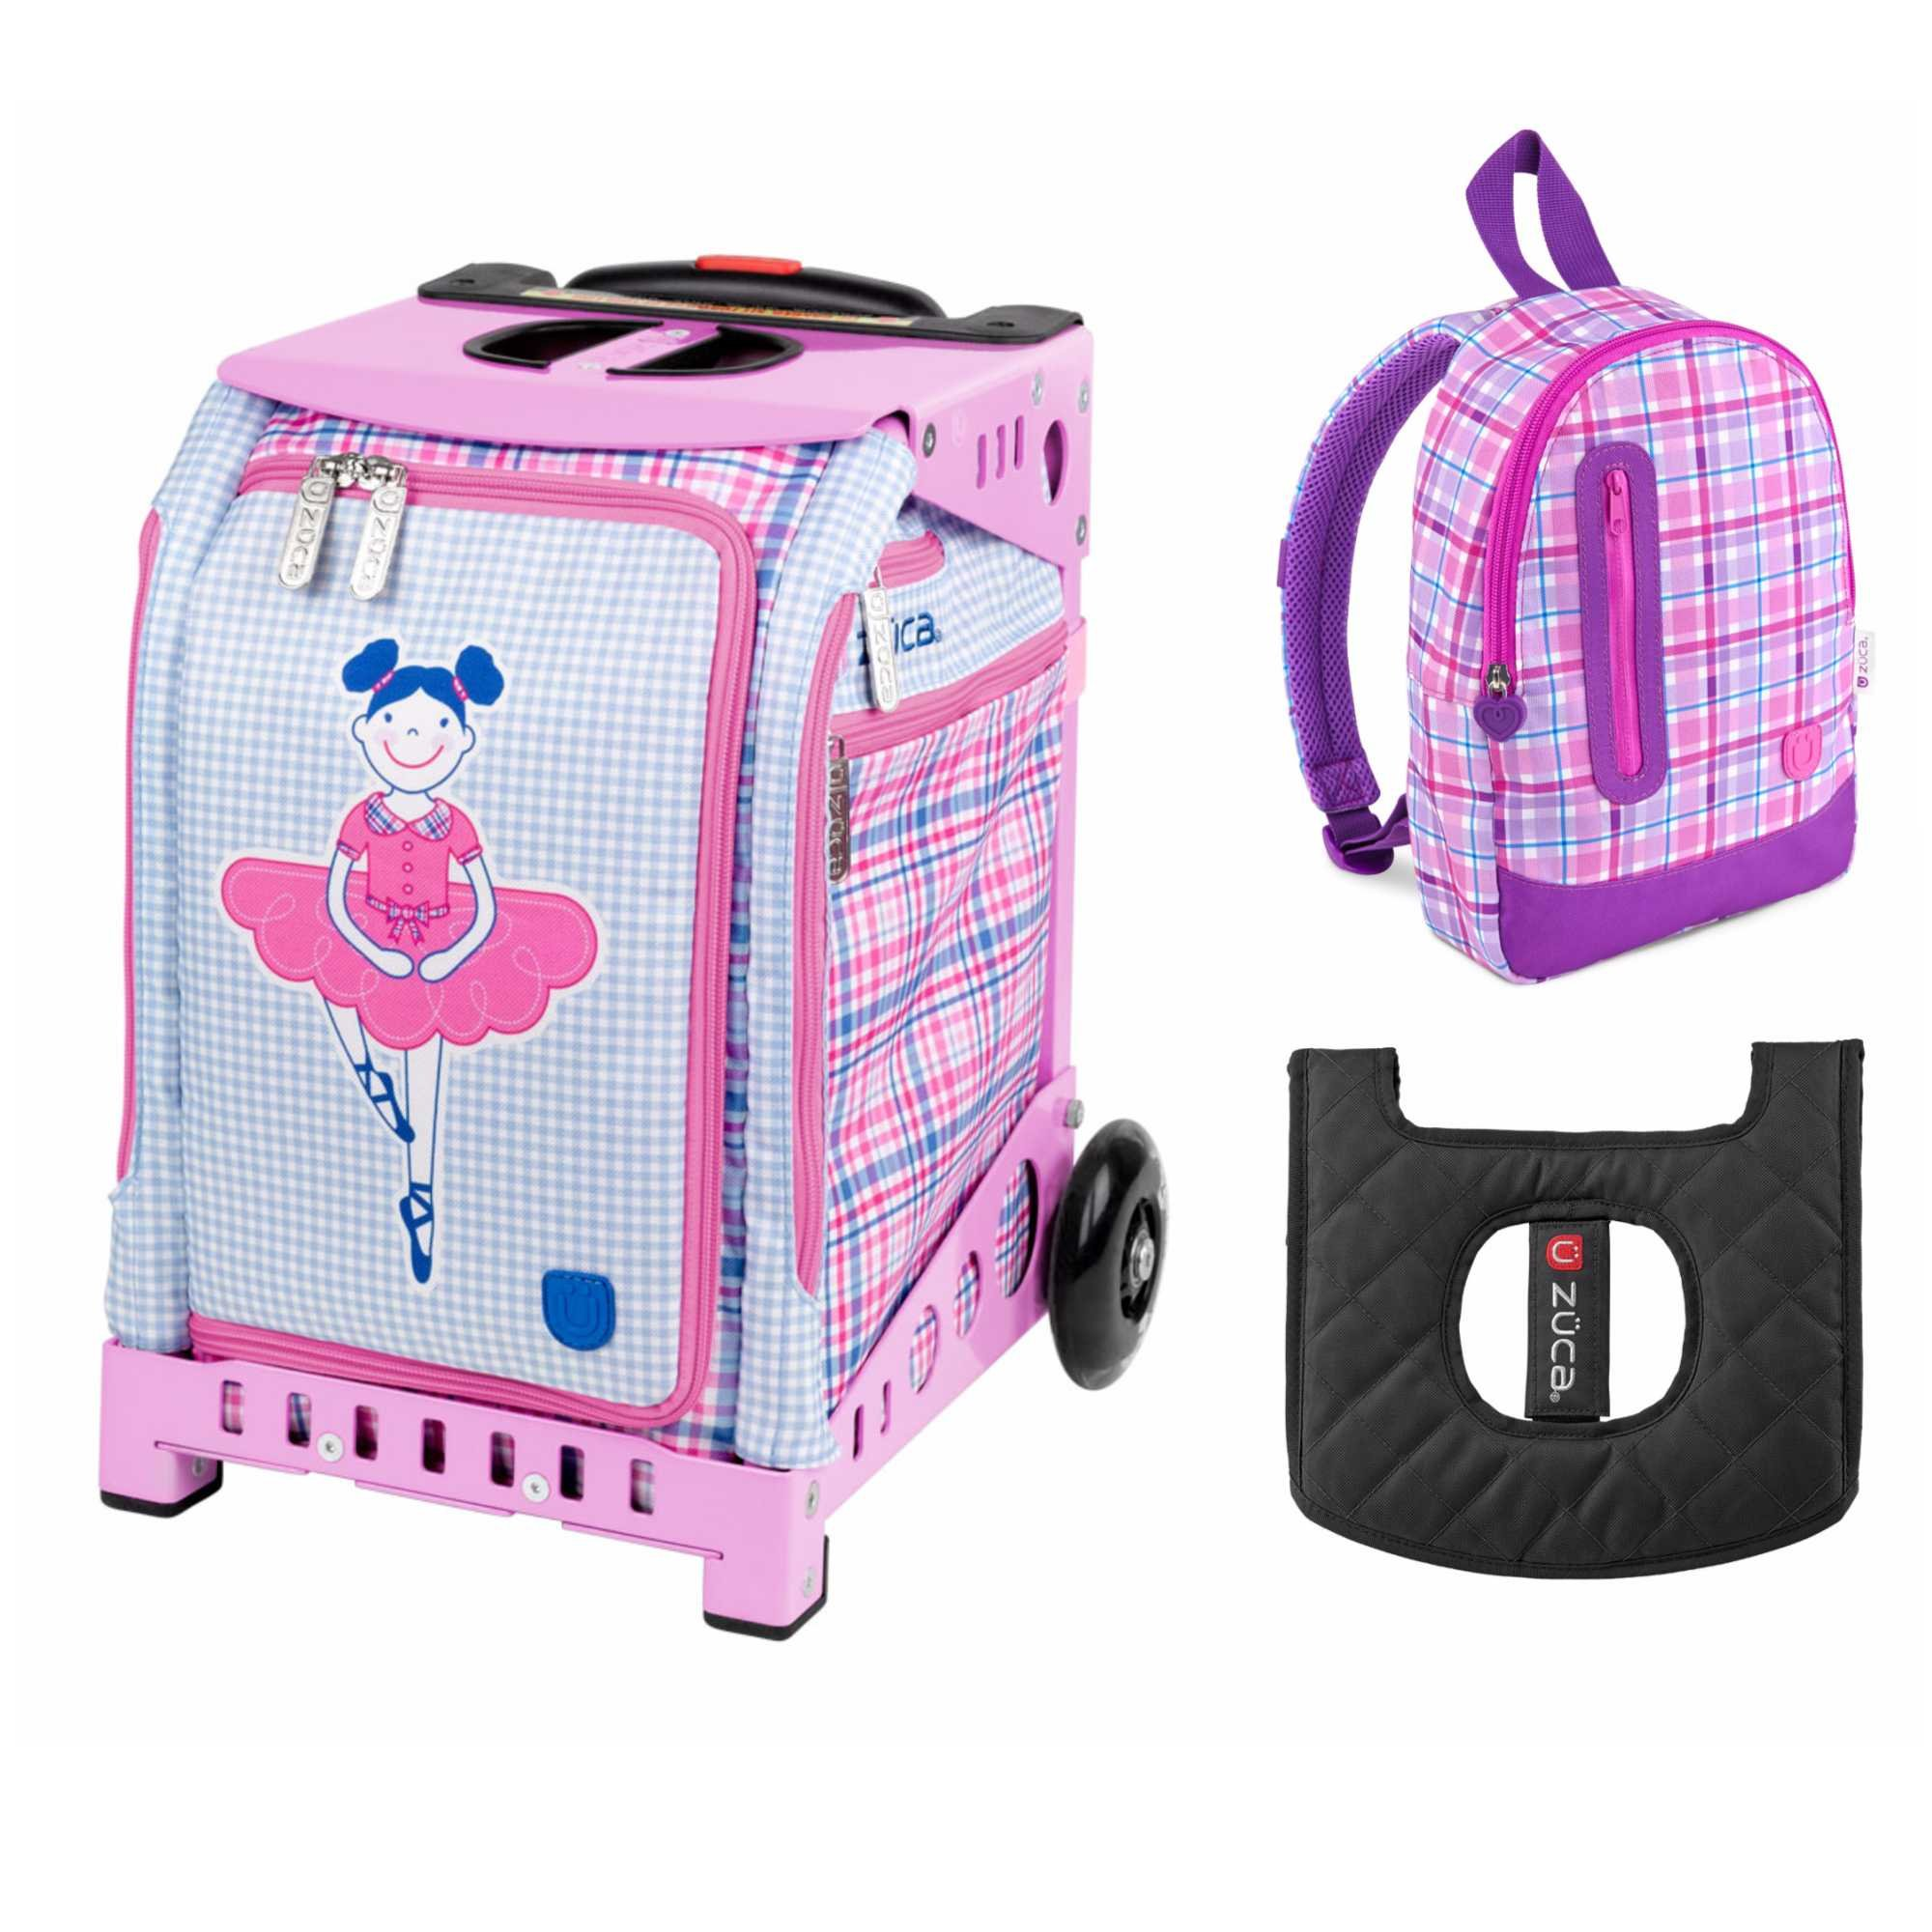 ZUCA Kids' Mini Ballerina Bag / Pink Frame + Backpack and Seat Cushion by ZUCA